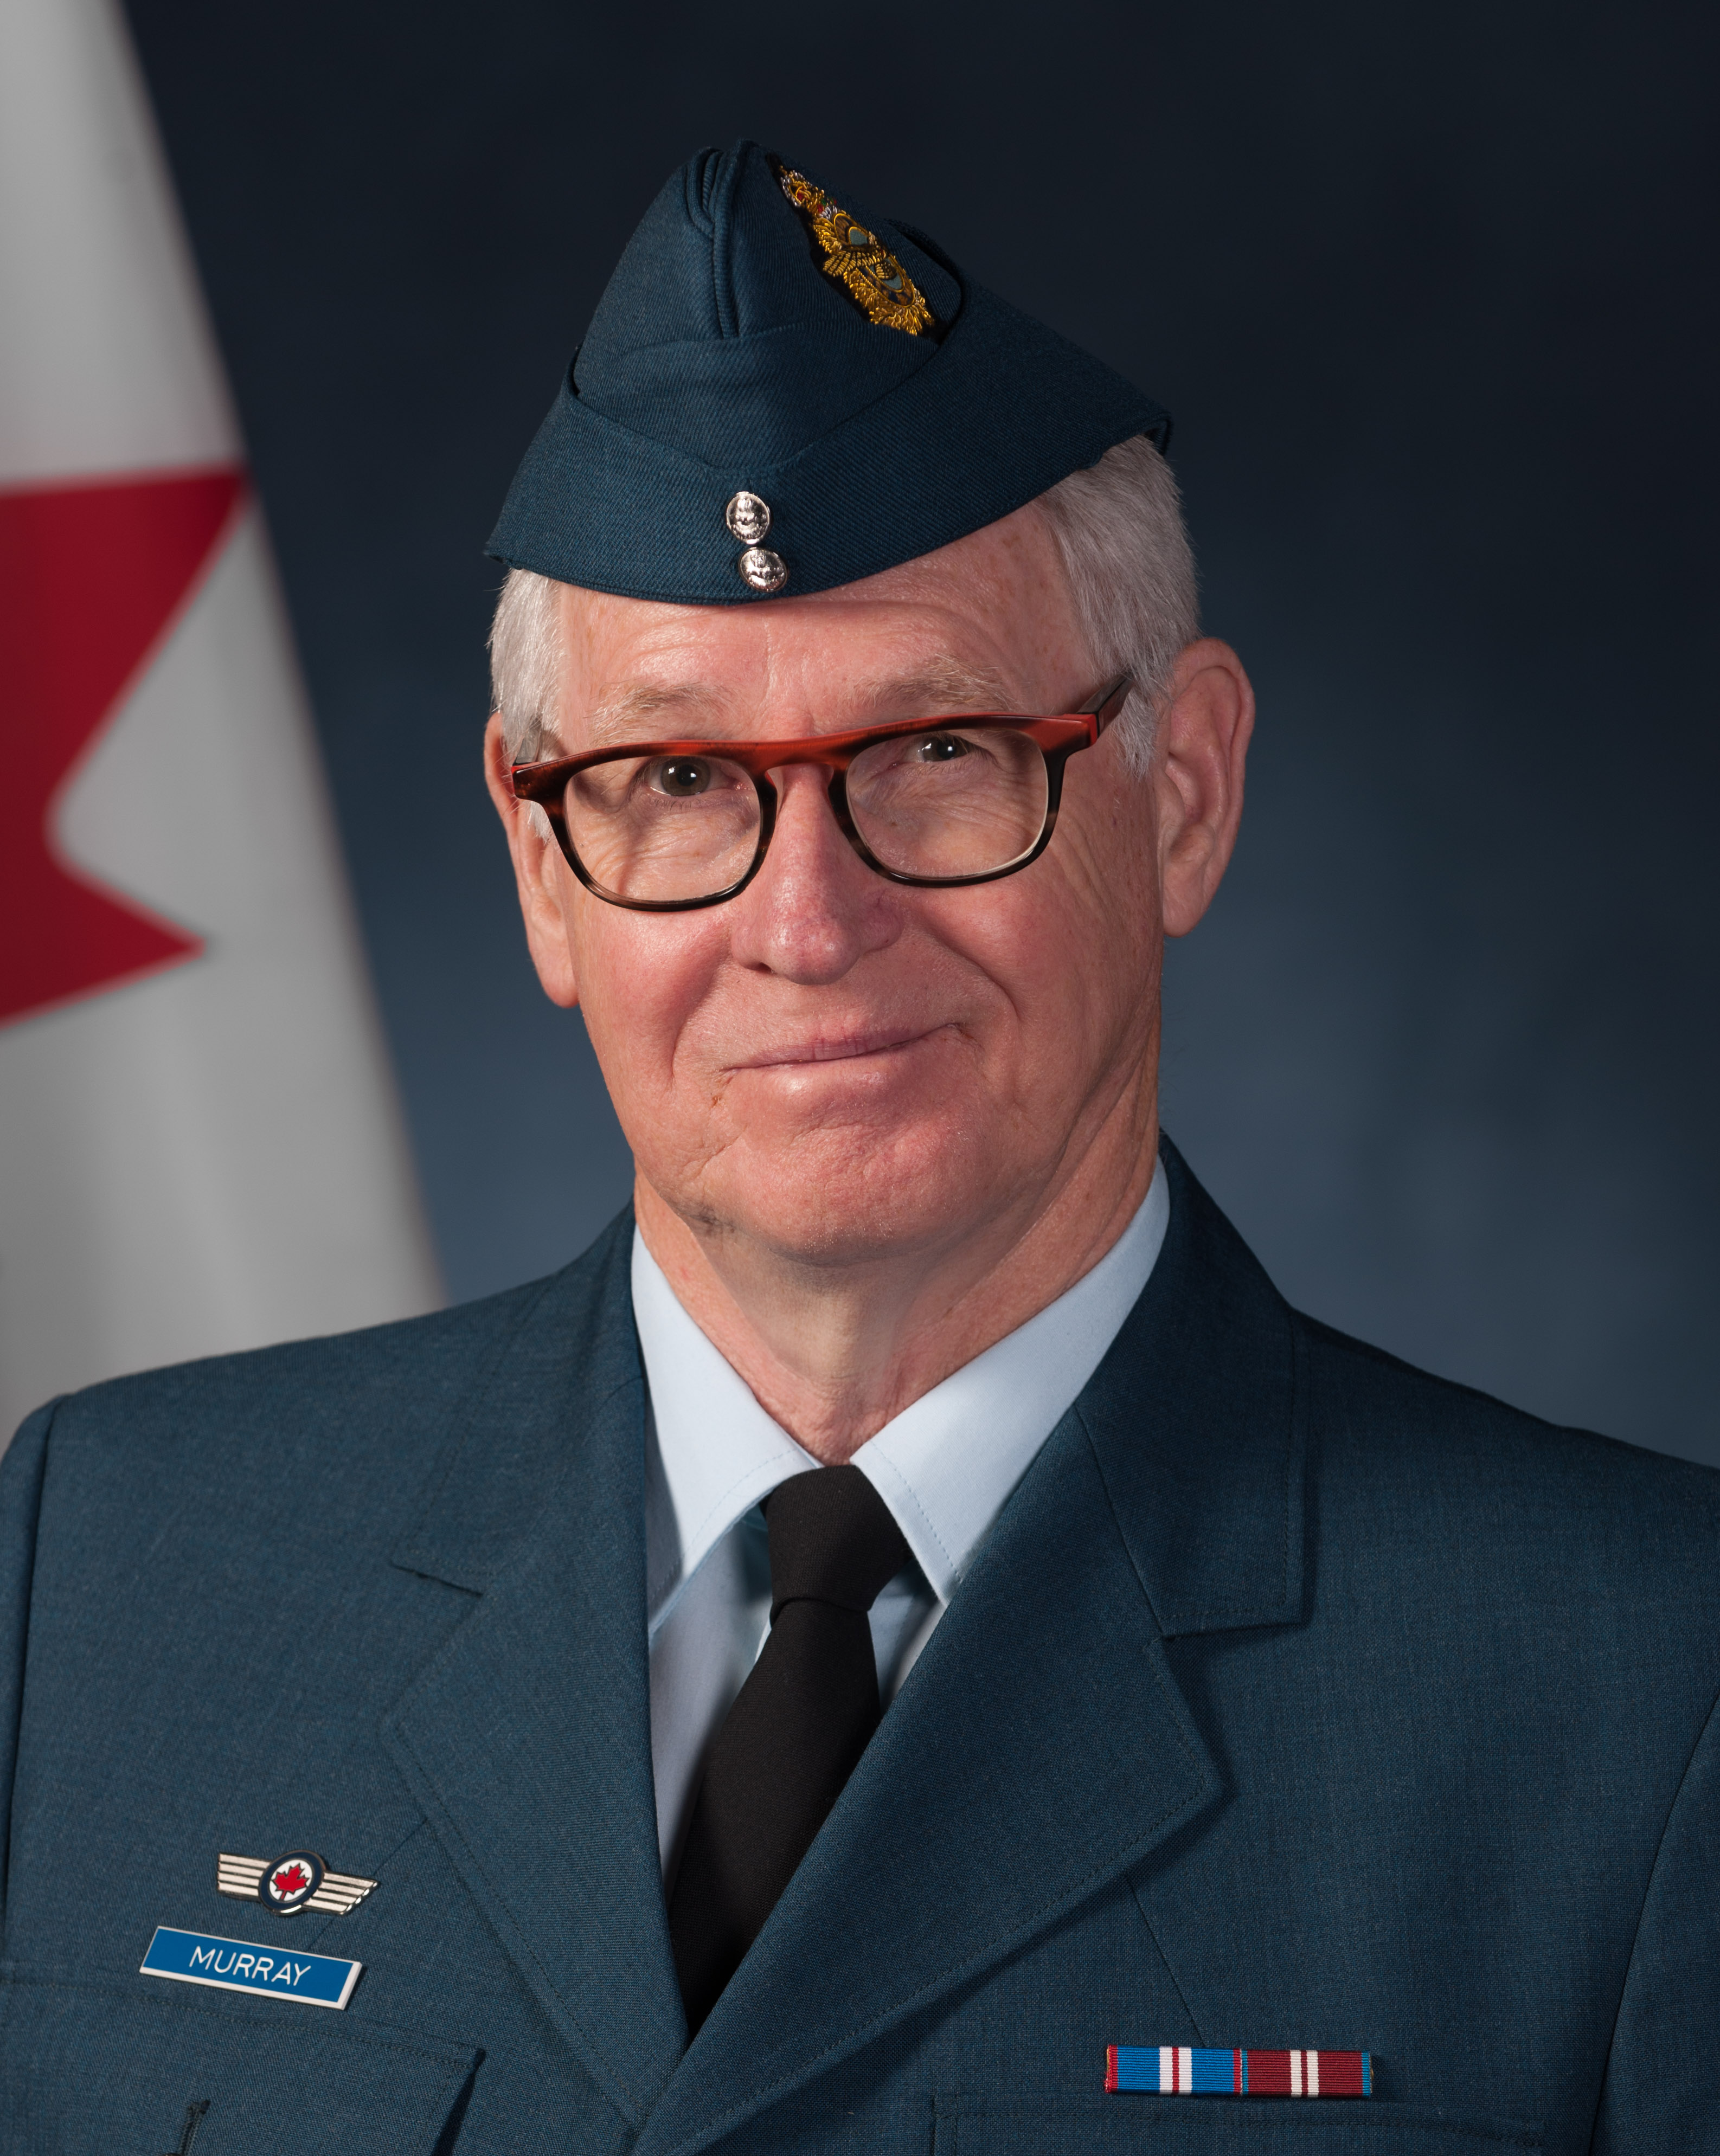 A photo of a man wearing a blue uniform, a wedge hat and glasses.